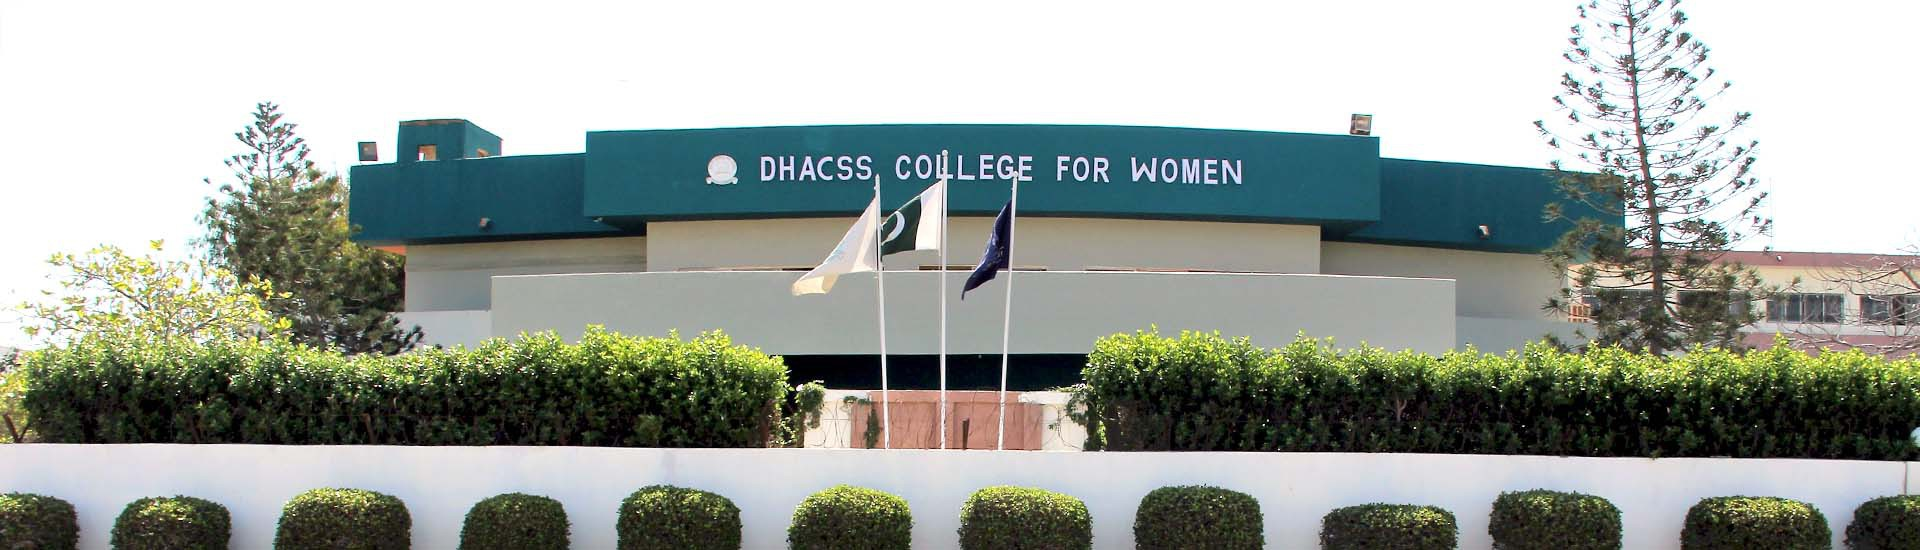 DHACSS College For Women